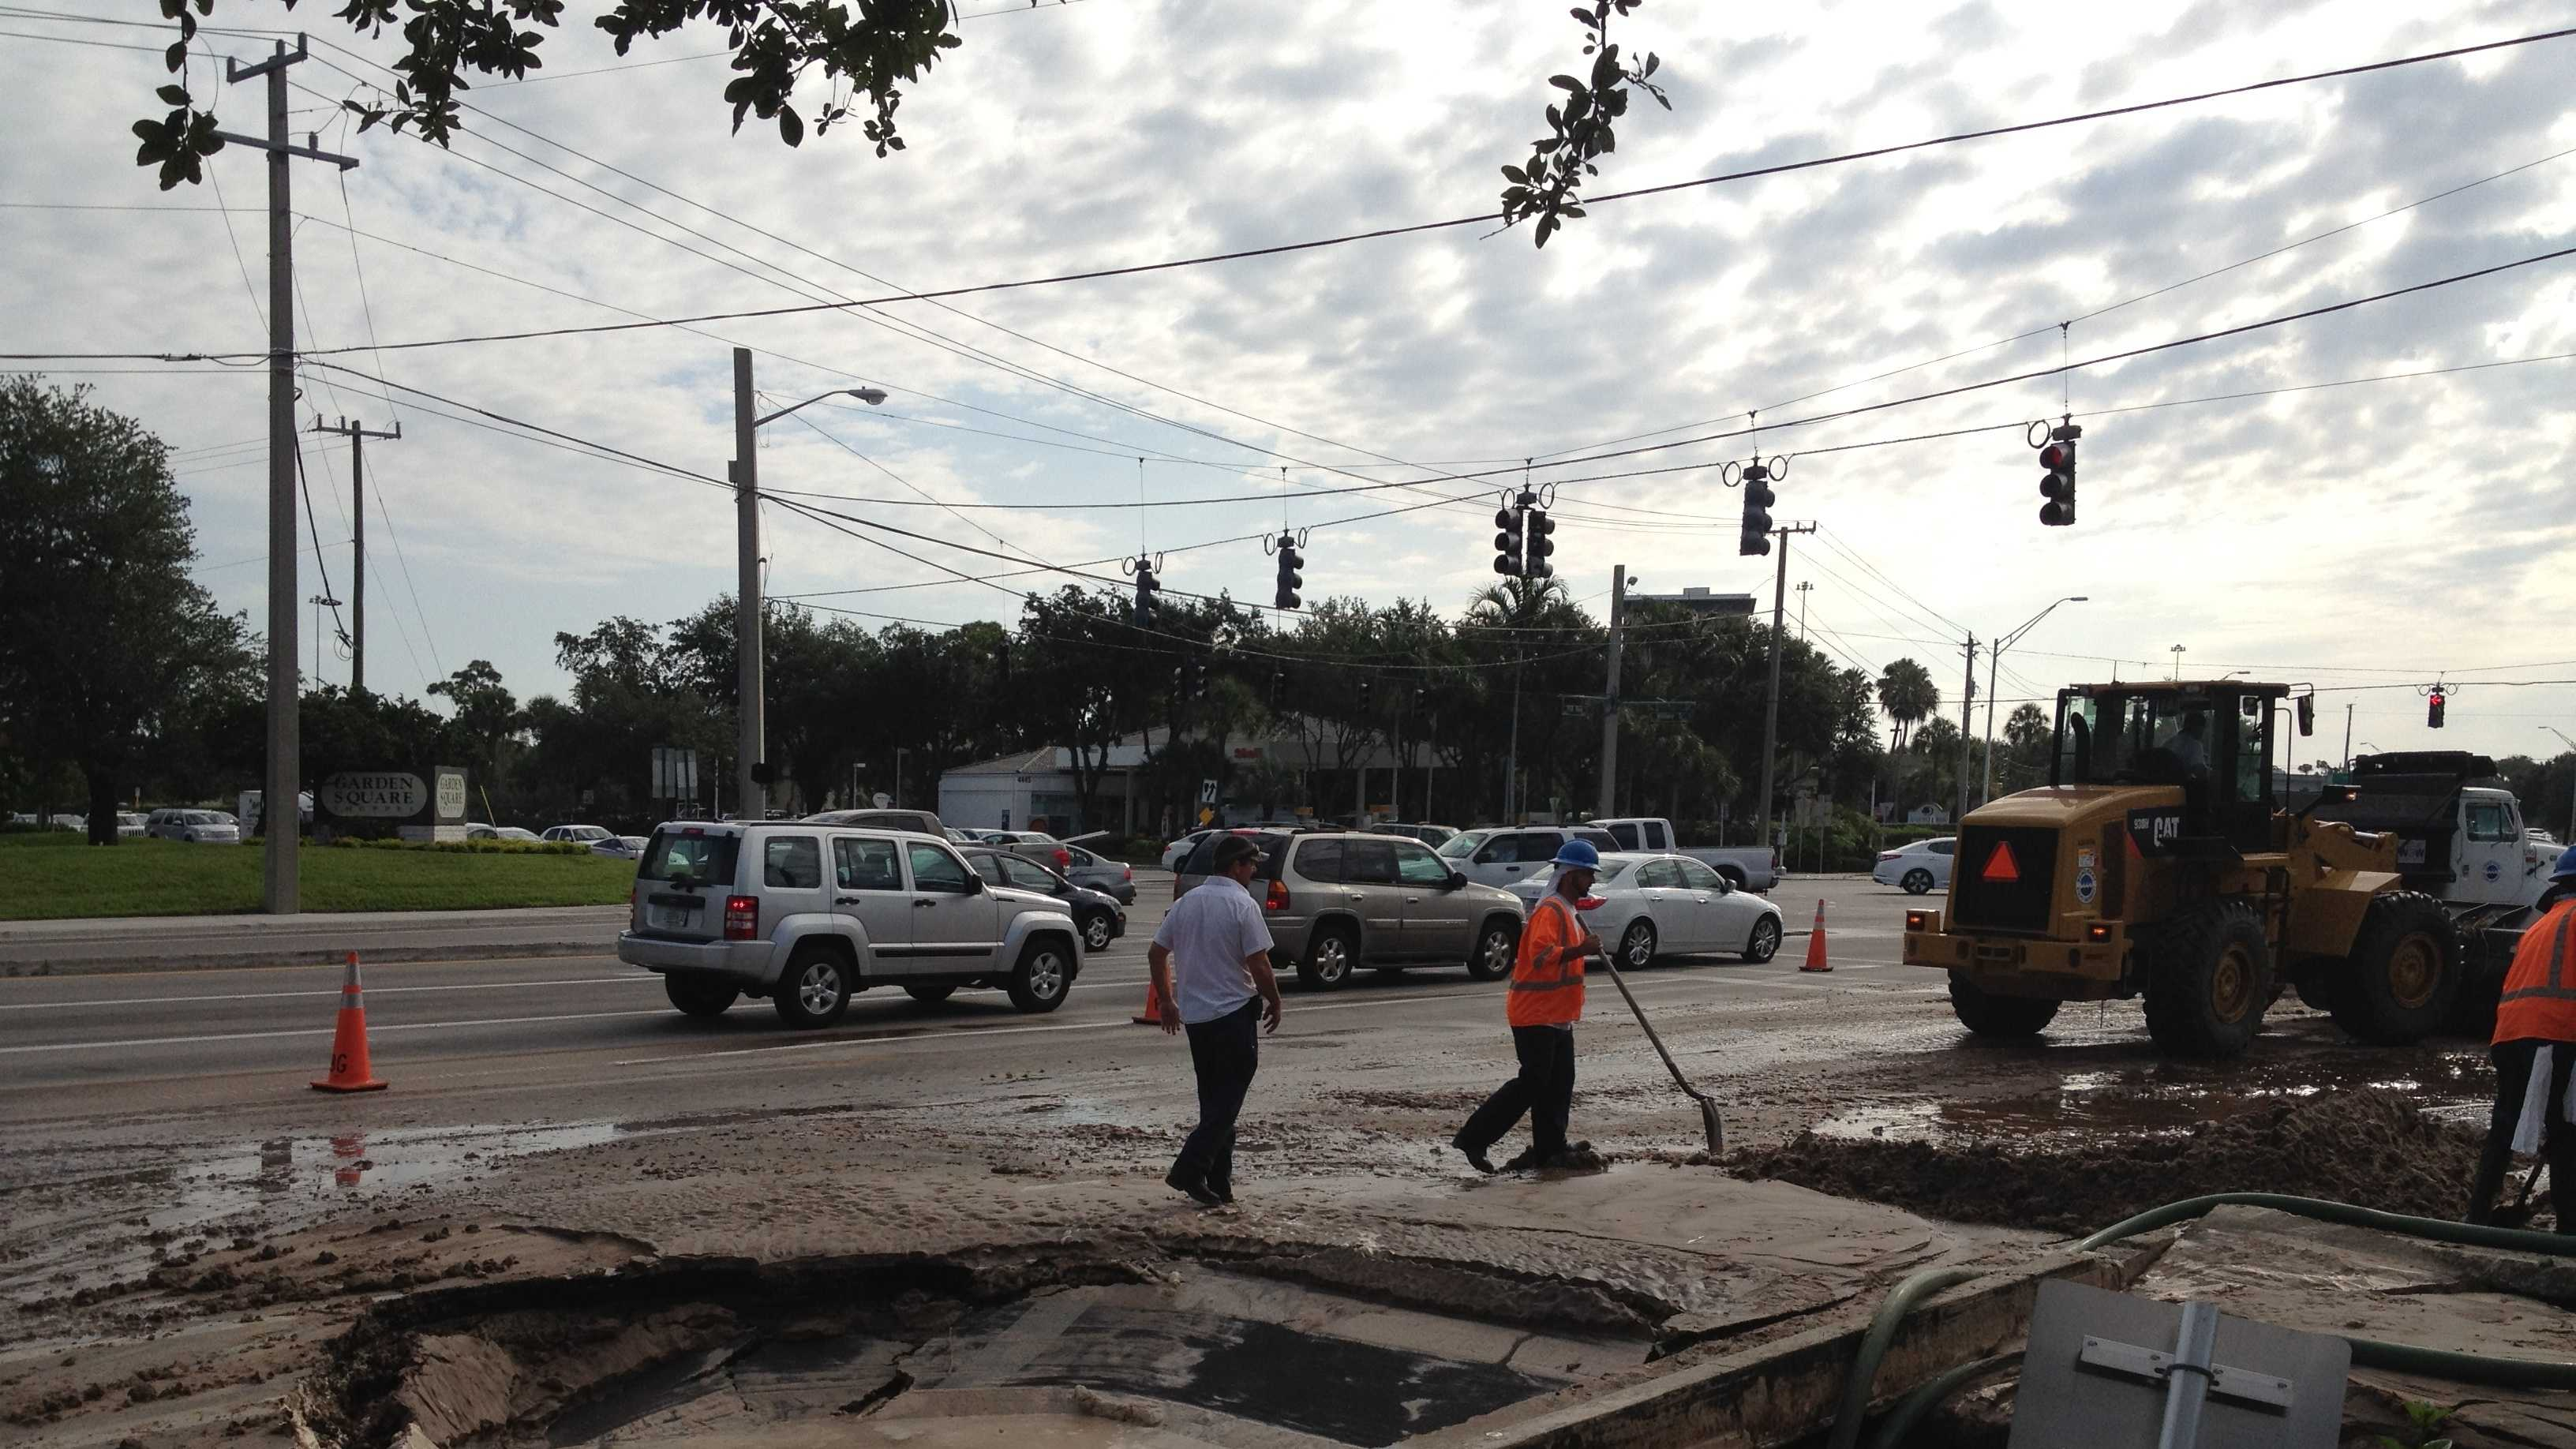 A water main break has forced the closure of several lanes near PGA Boulevard and Military Trail. (Chris Emma/WPBF)